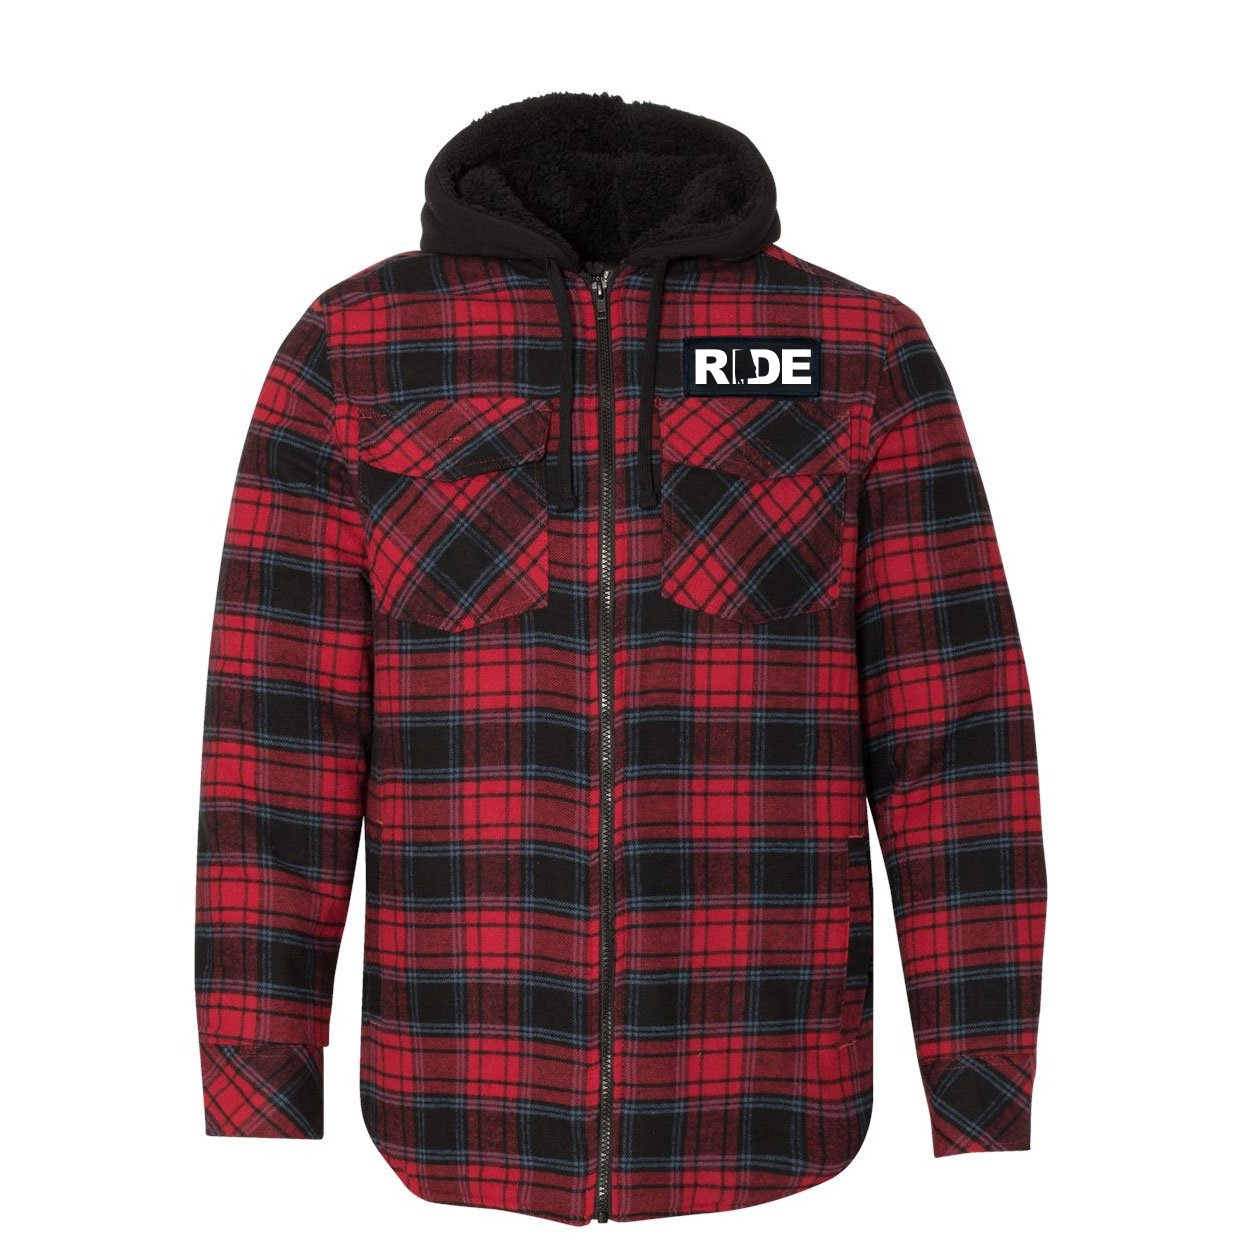 Ride Alabama Classic Unisex Full Zip Woven Patch Hooded Flannel Jacket Red/Black Buffalo (White Logo)